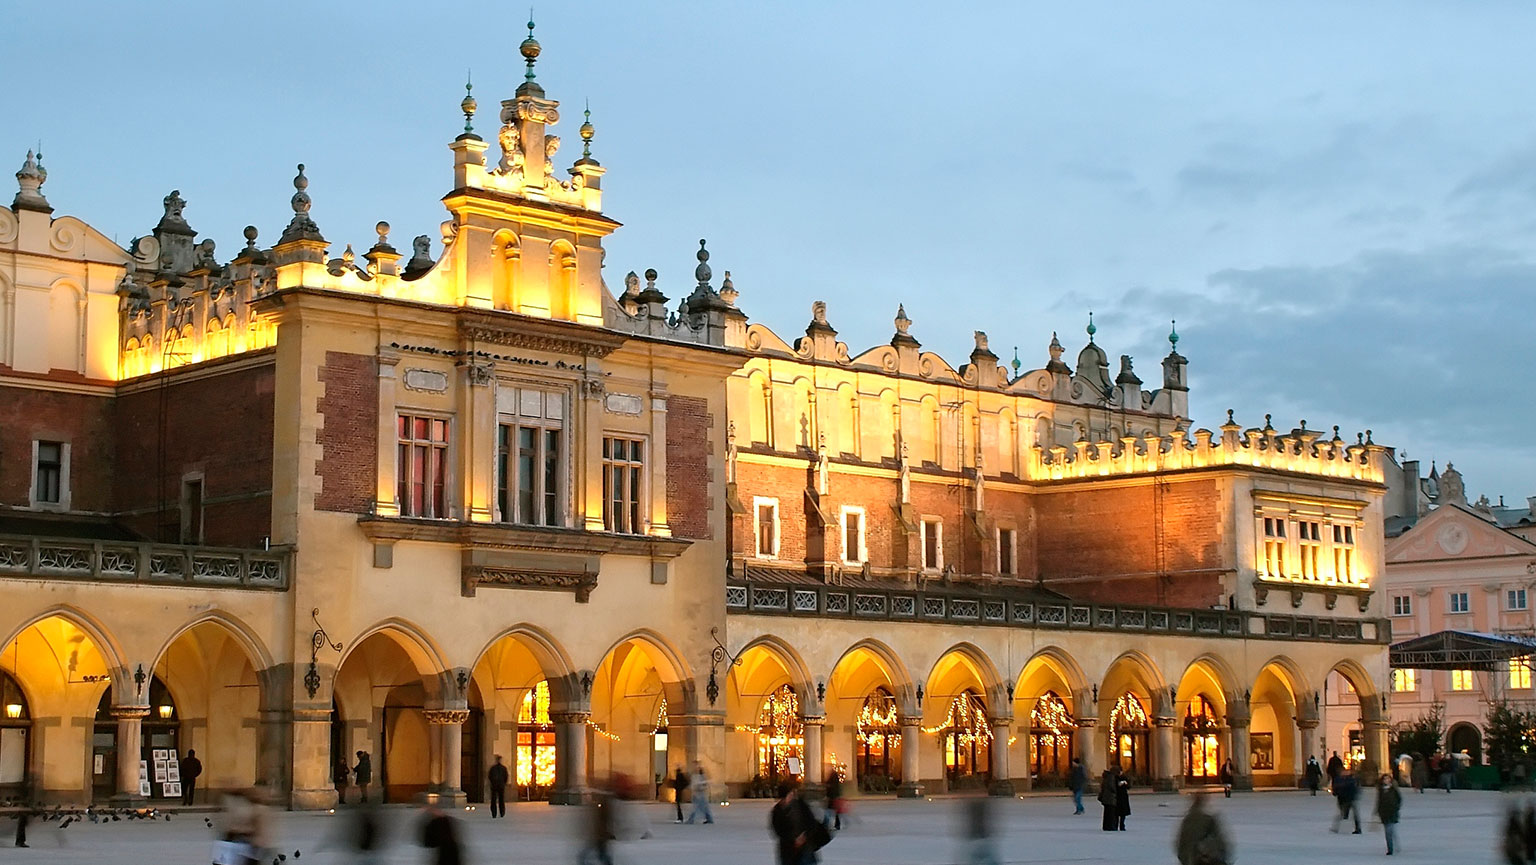 Kraków—Crossroads of Europe